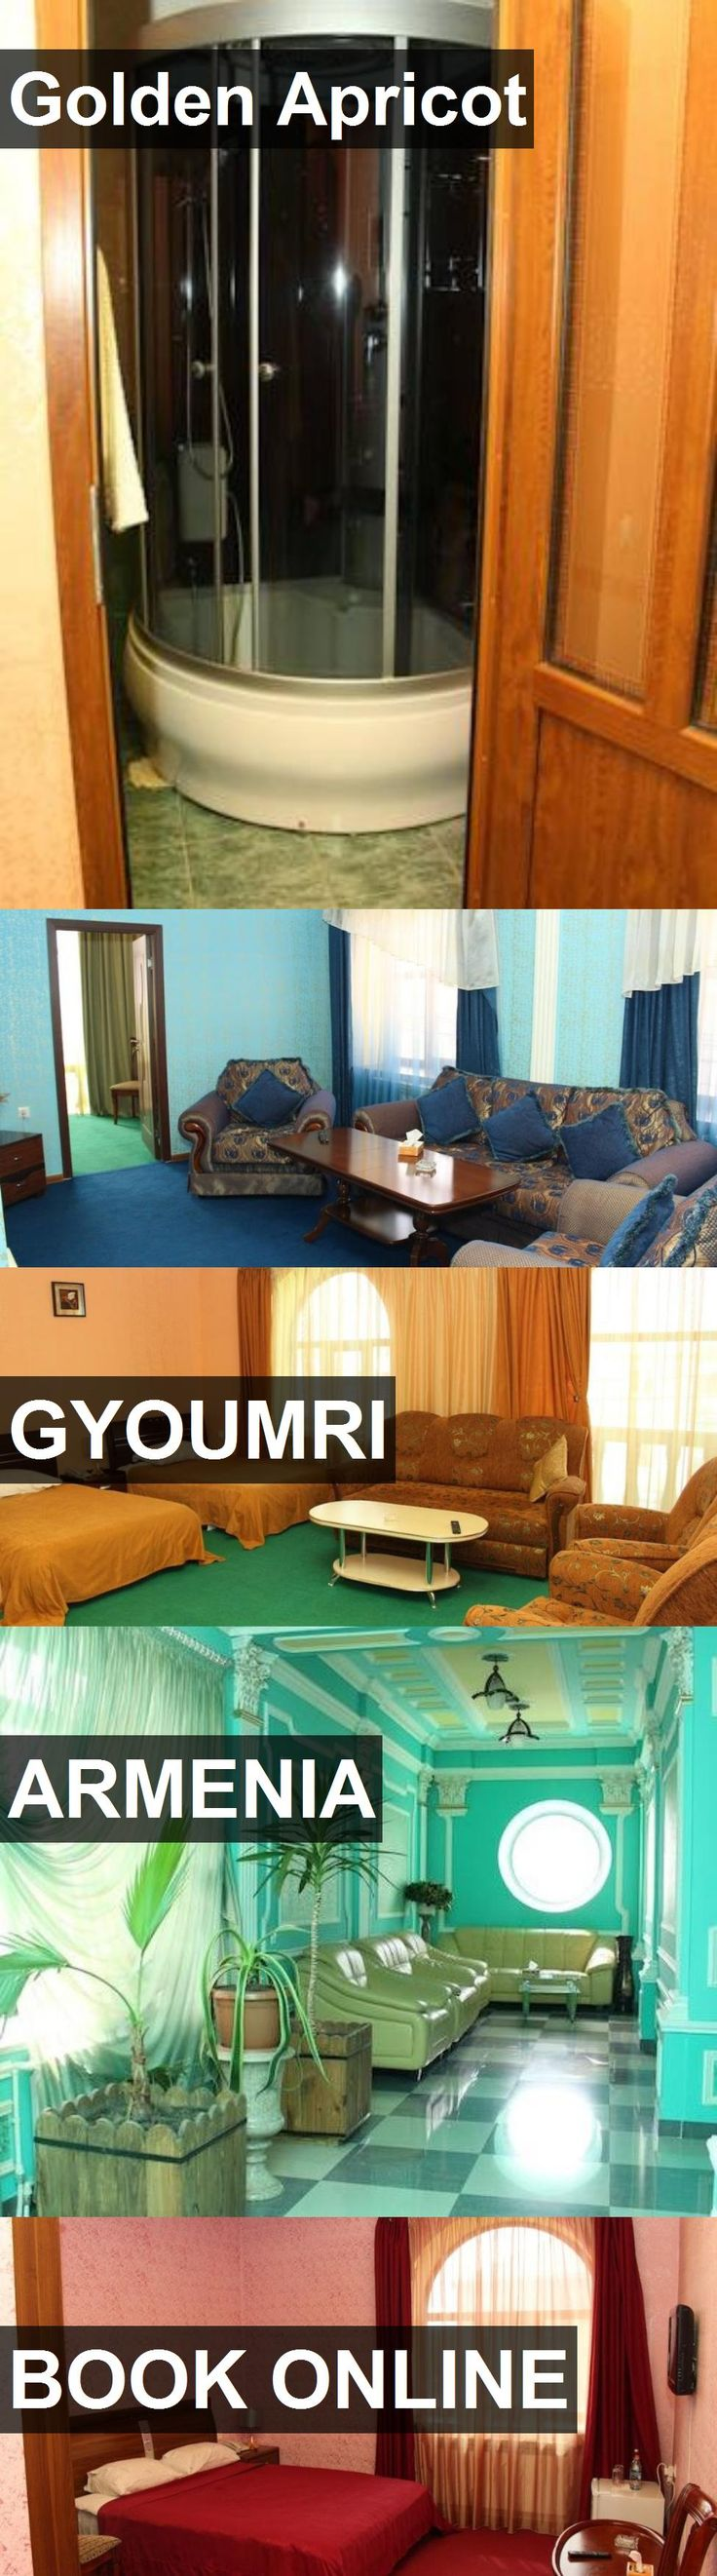 Hotel Golden Apricot in Gyoumri, Armenia. For more information, photos, reviews and best prices please follow the link. #Armenia #Gyoumri #travel #vacation #hotel